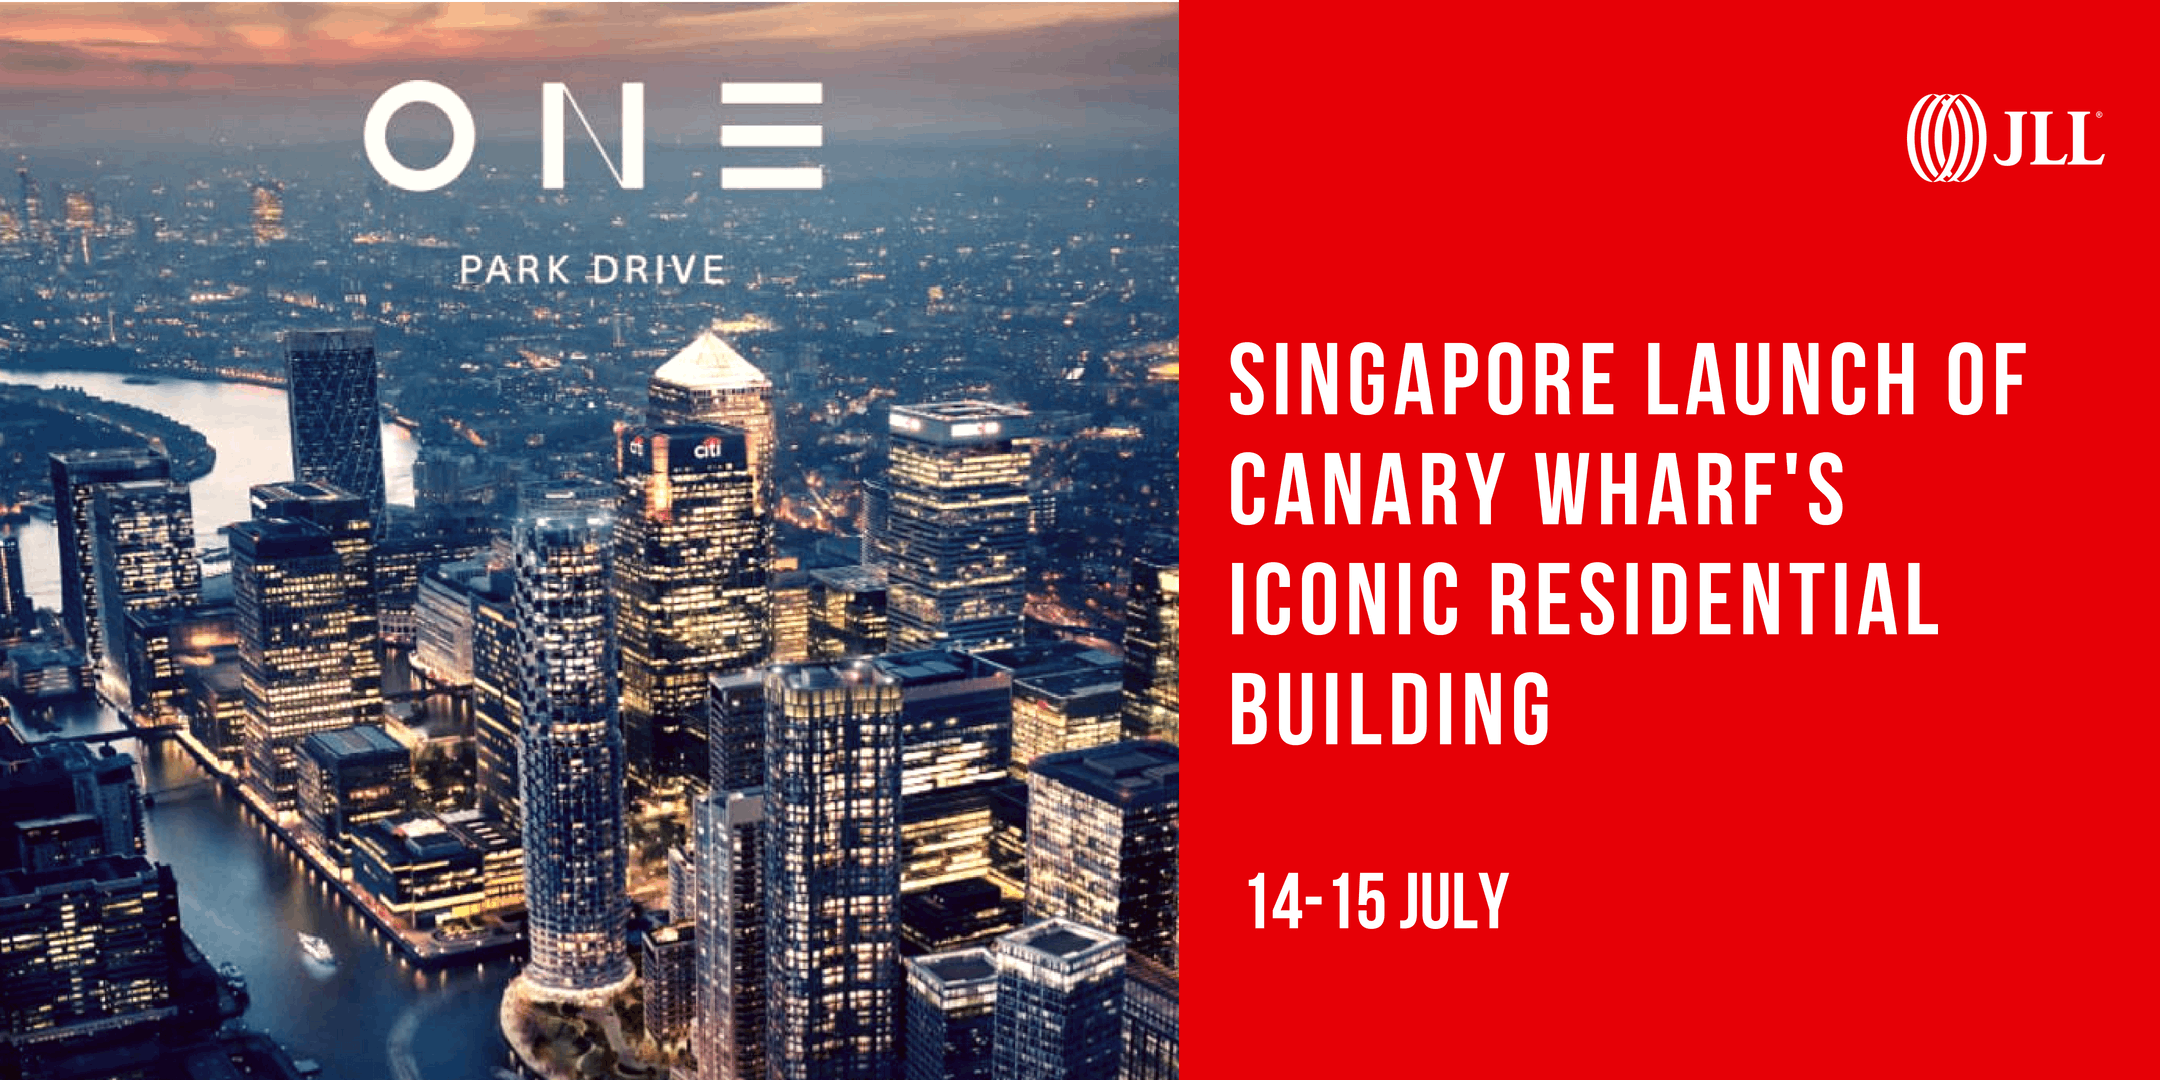 Singapore launch of Canary Wharfs iconic residential building